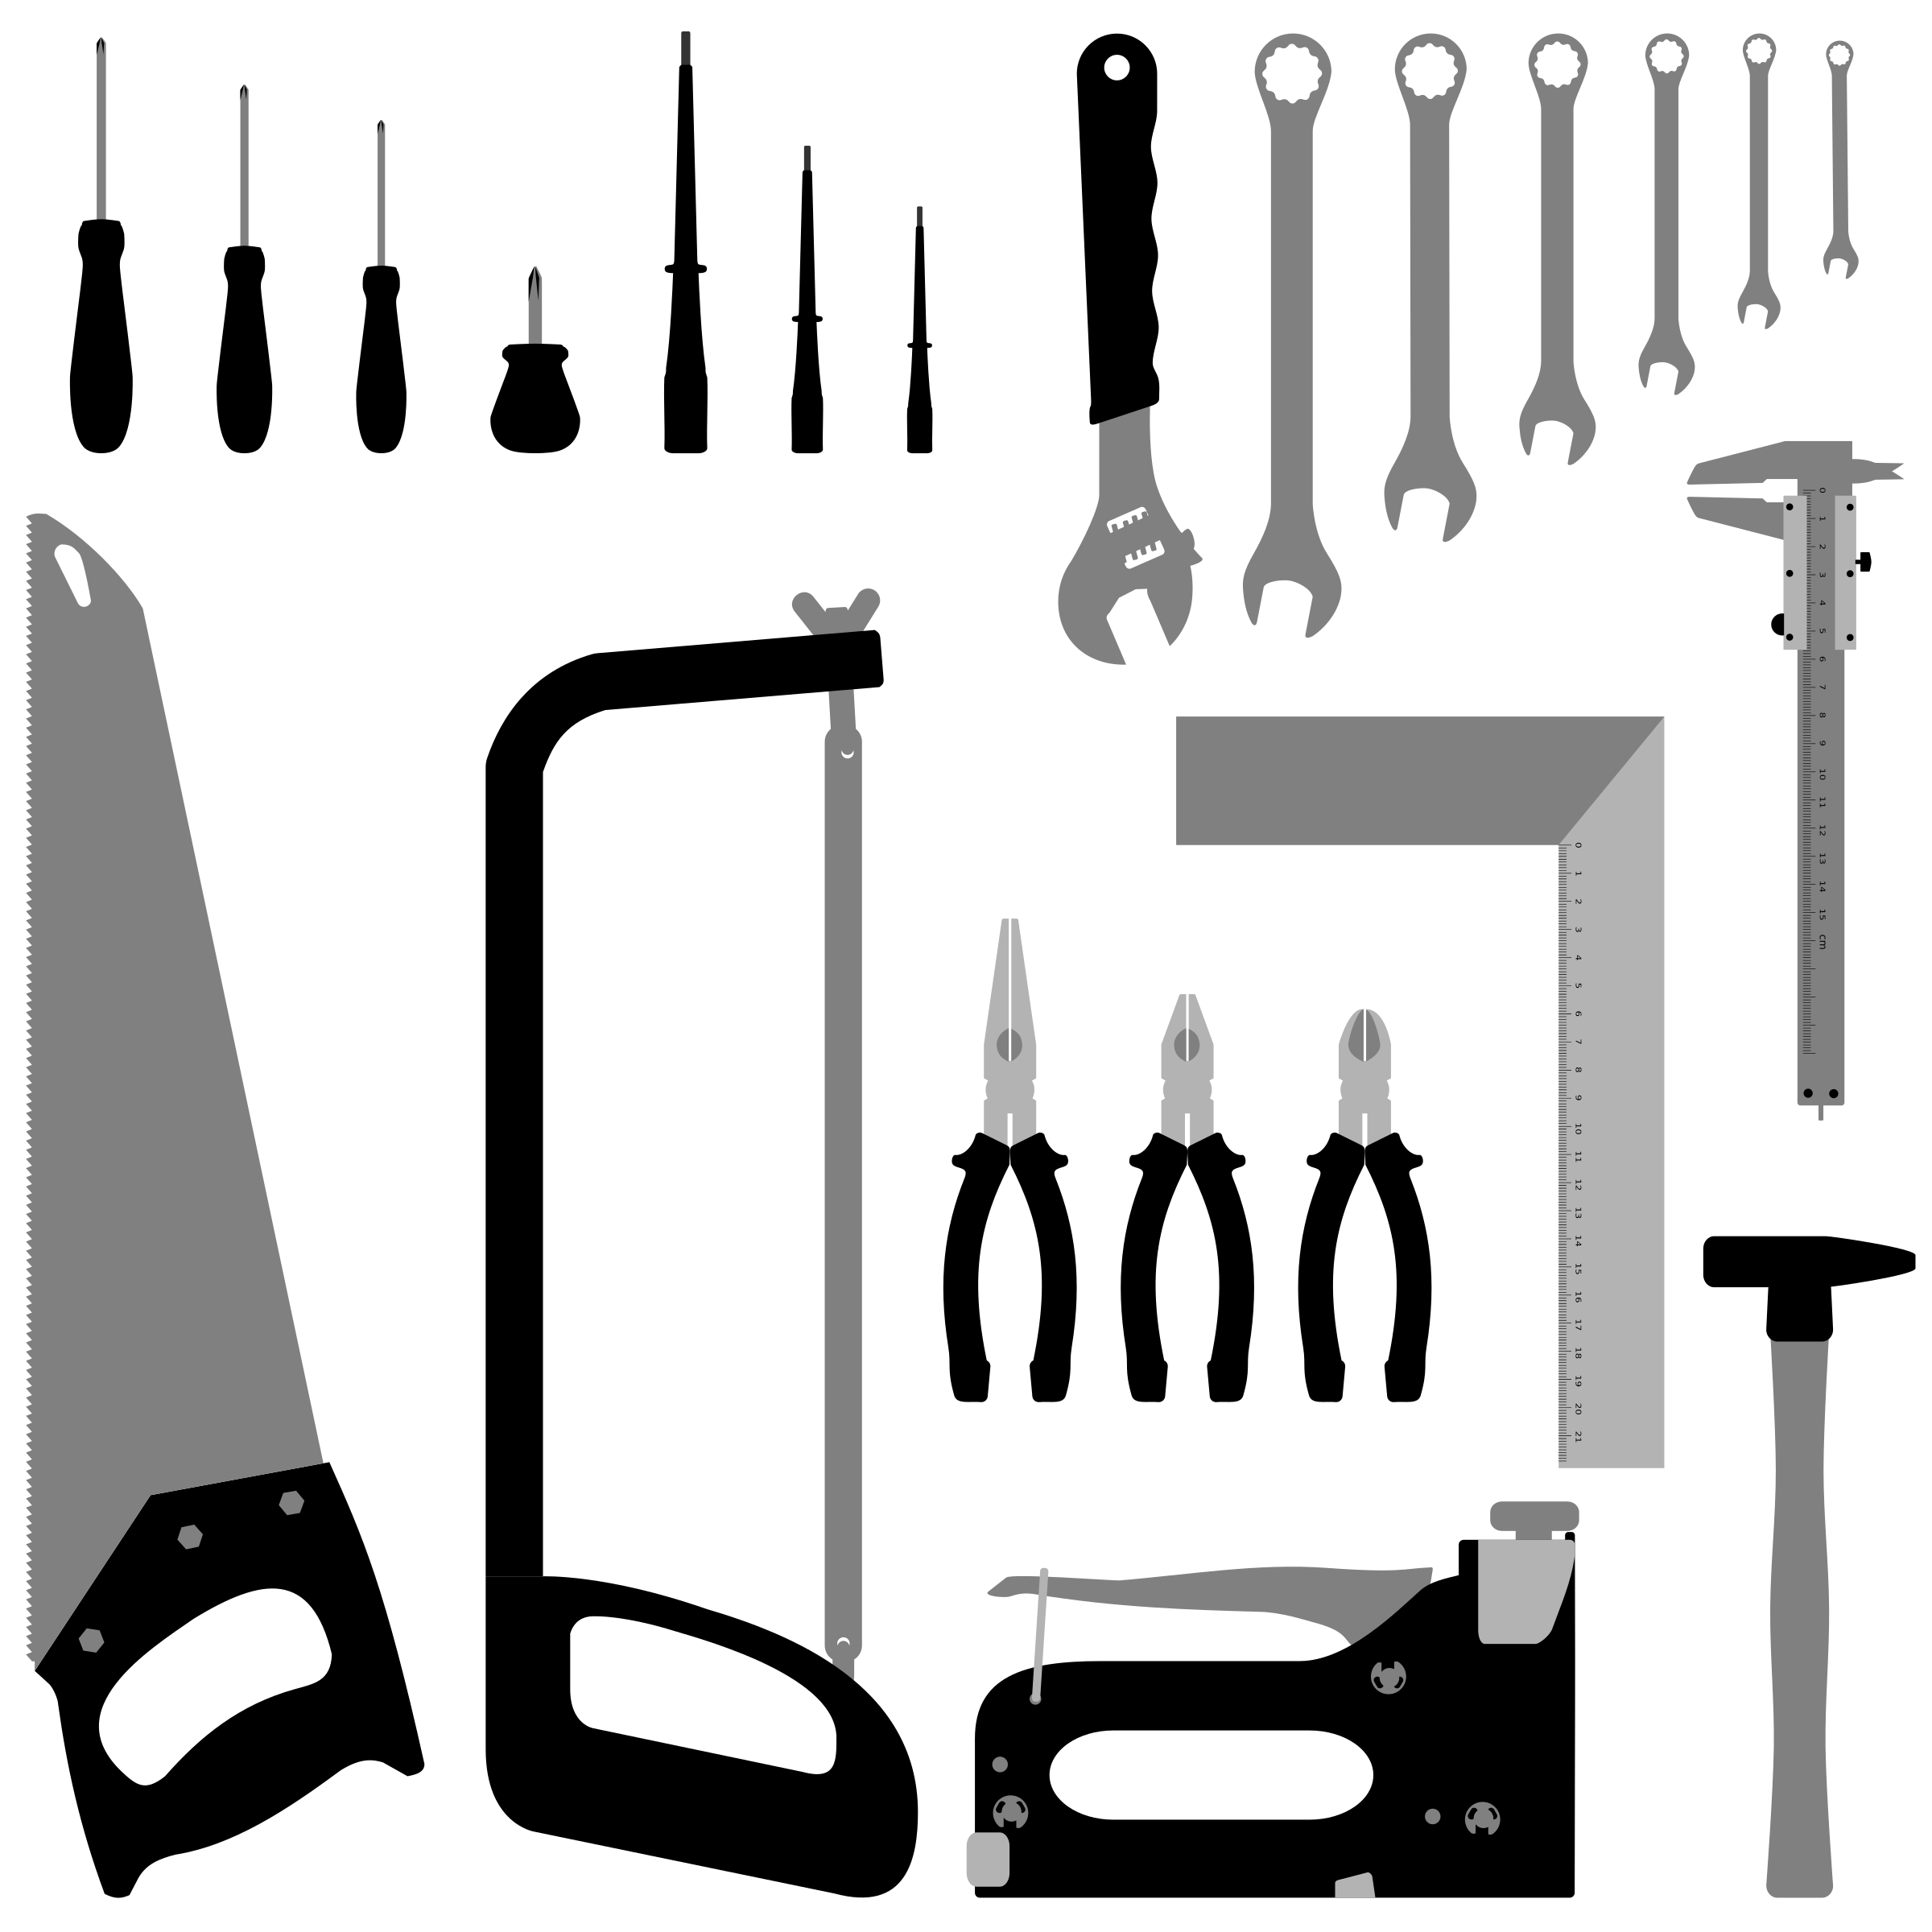 Hand clipart wrench. Tools big image png